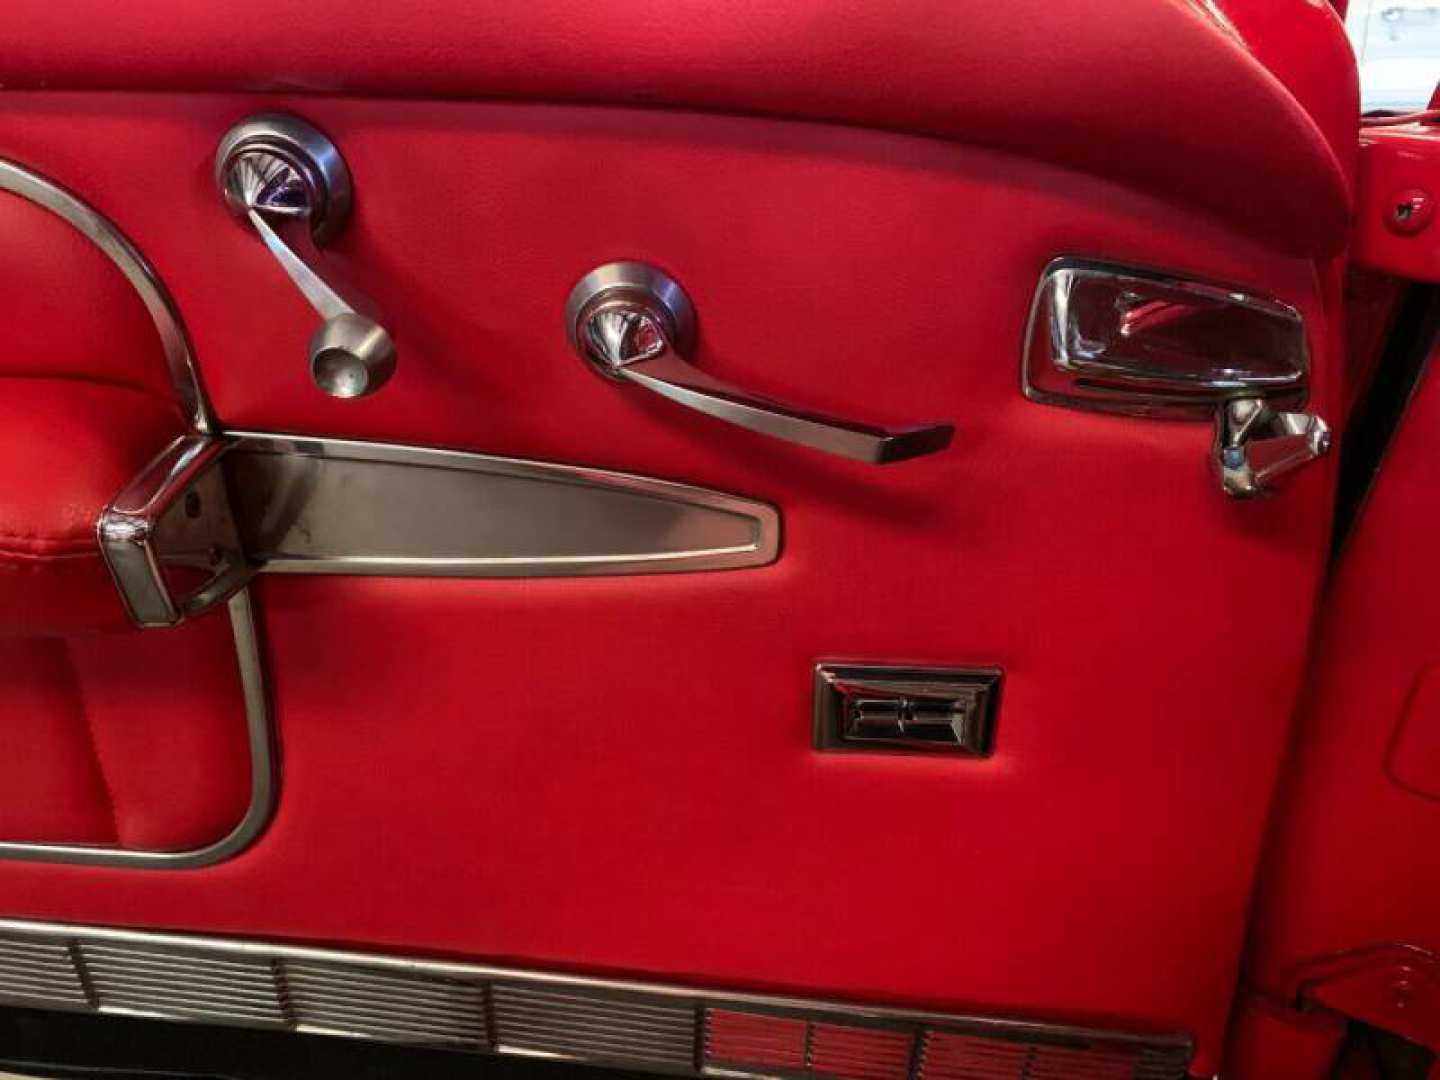 71st Image of a 1958 CADILLAC DEVILLE